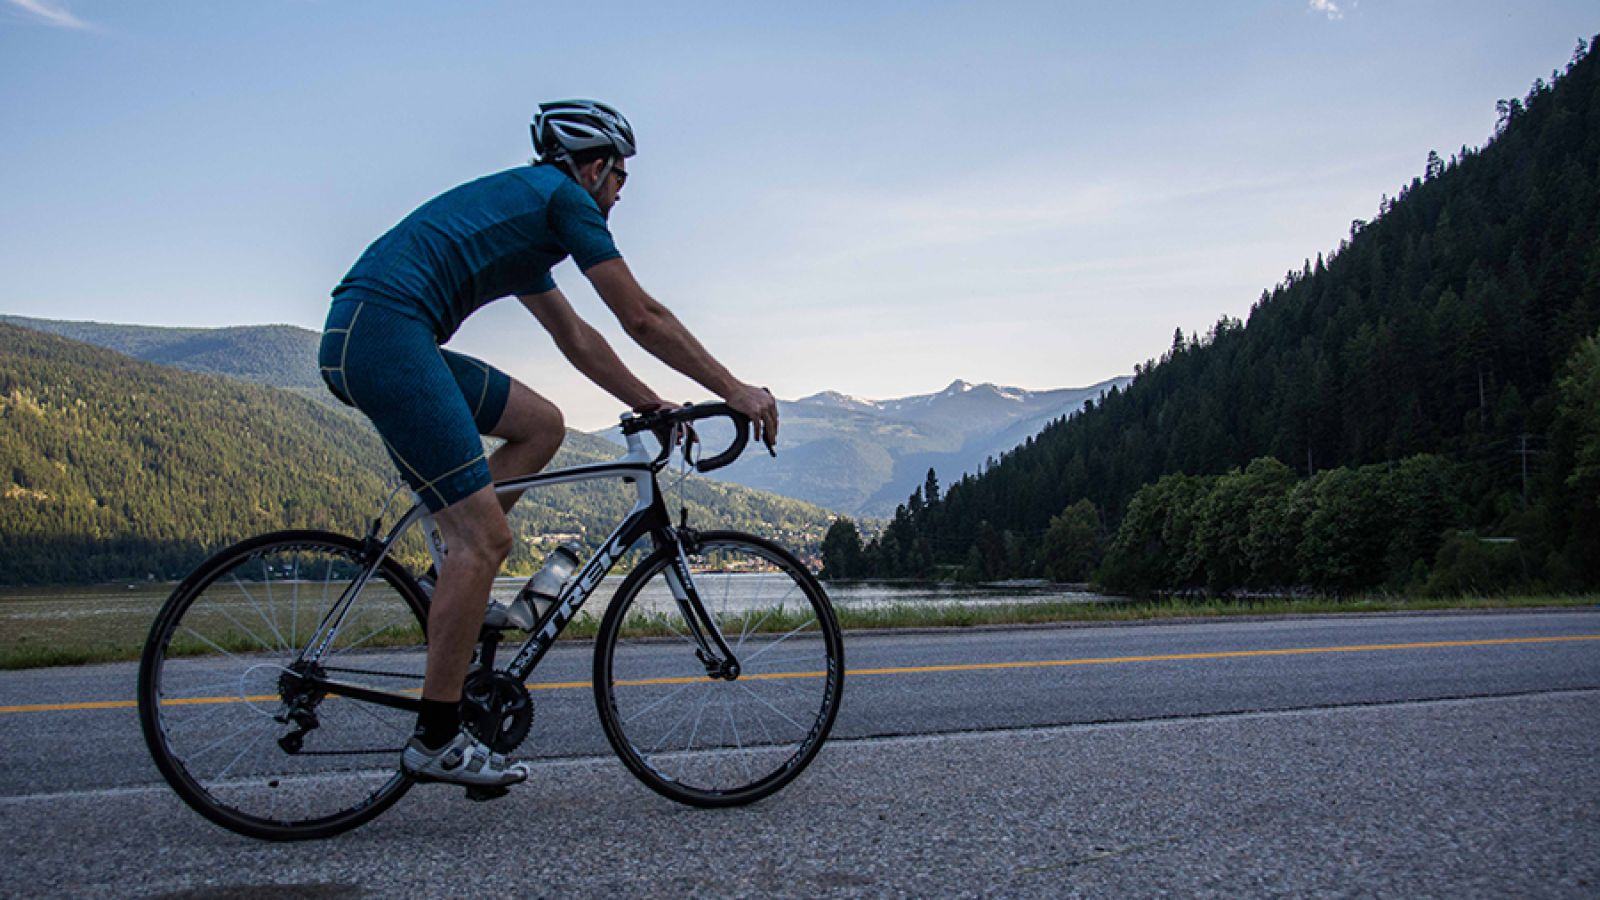 The area is a cyclist's paradise.